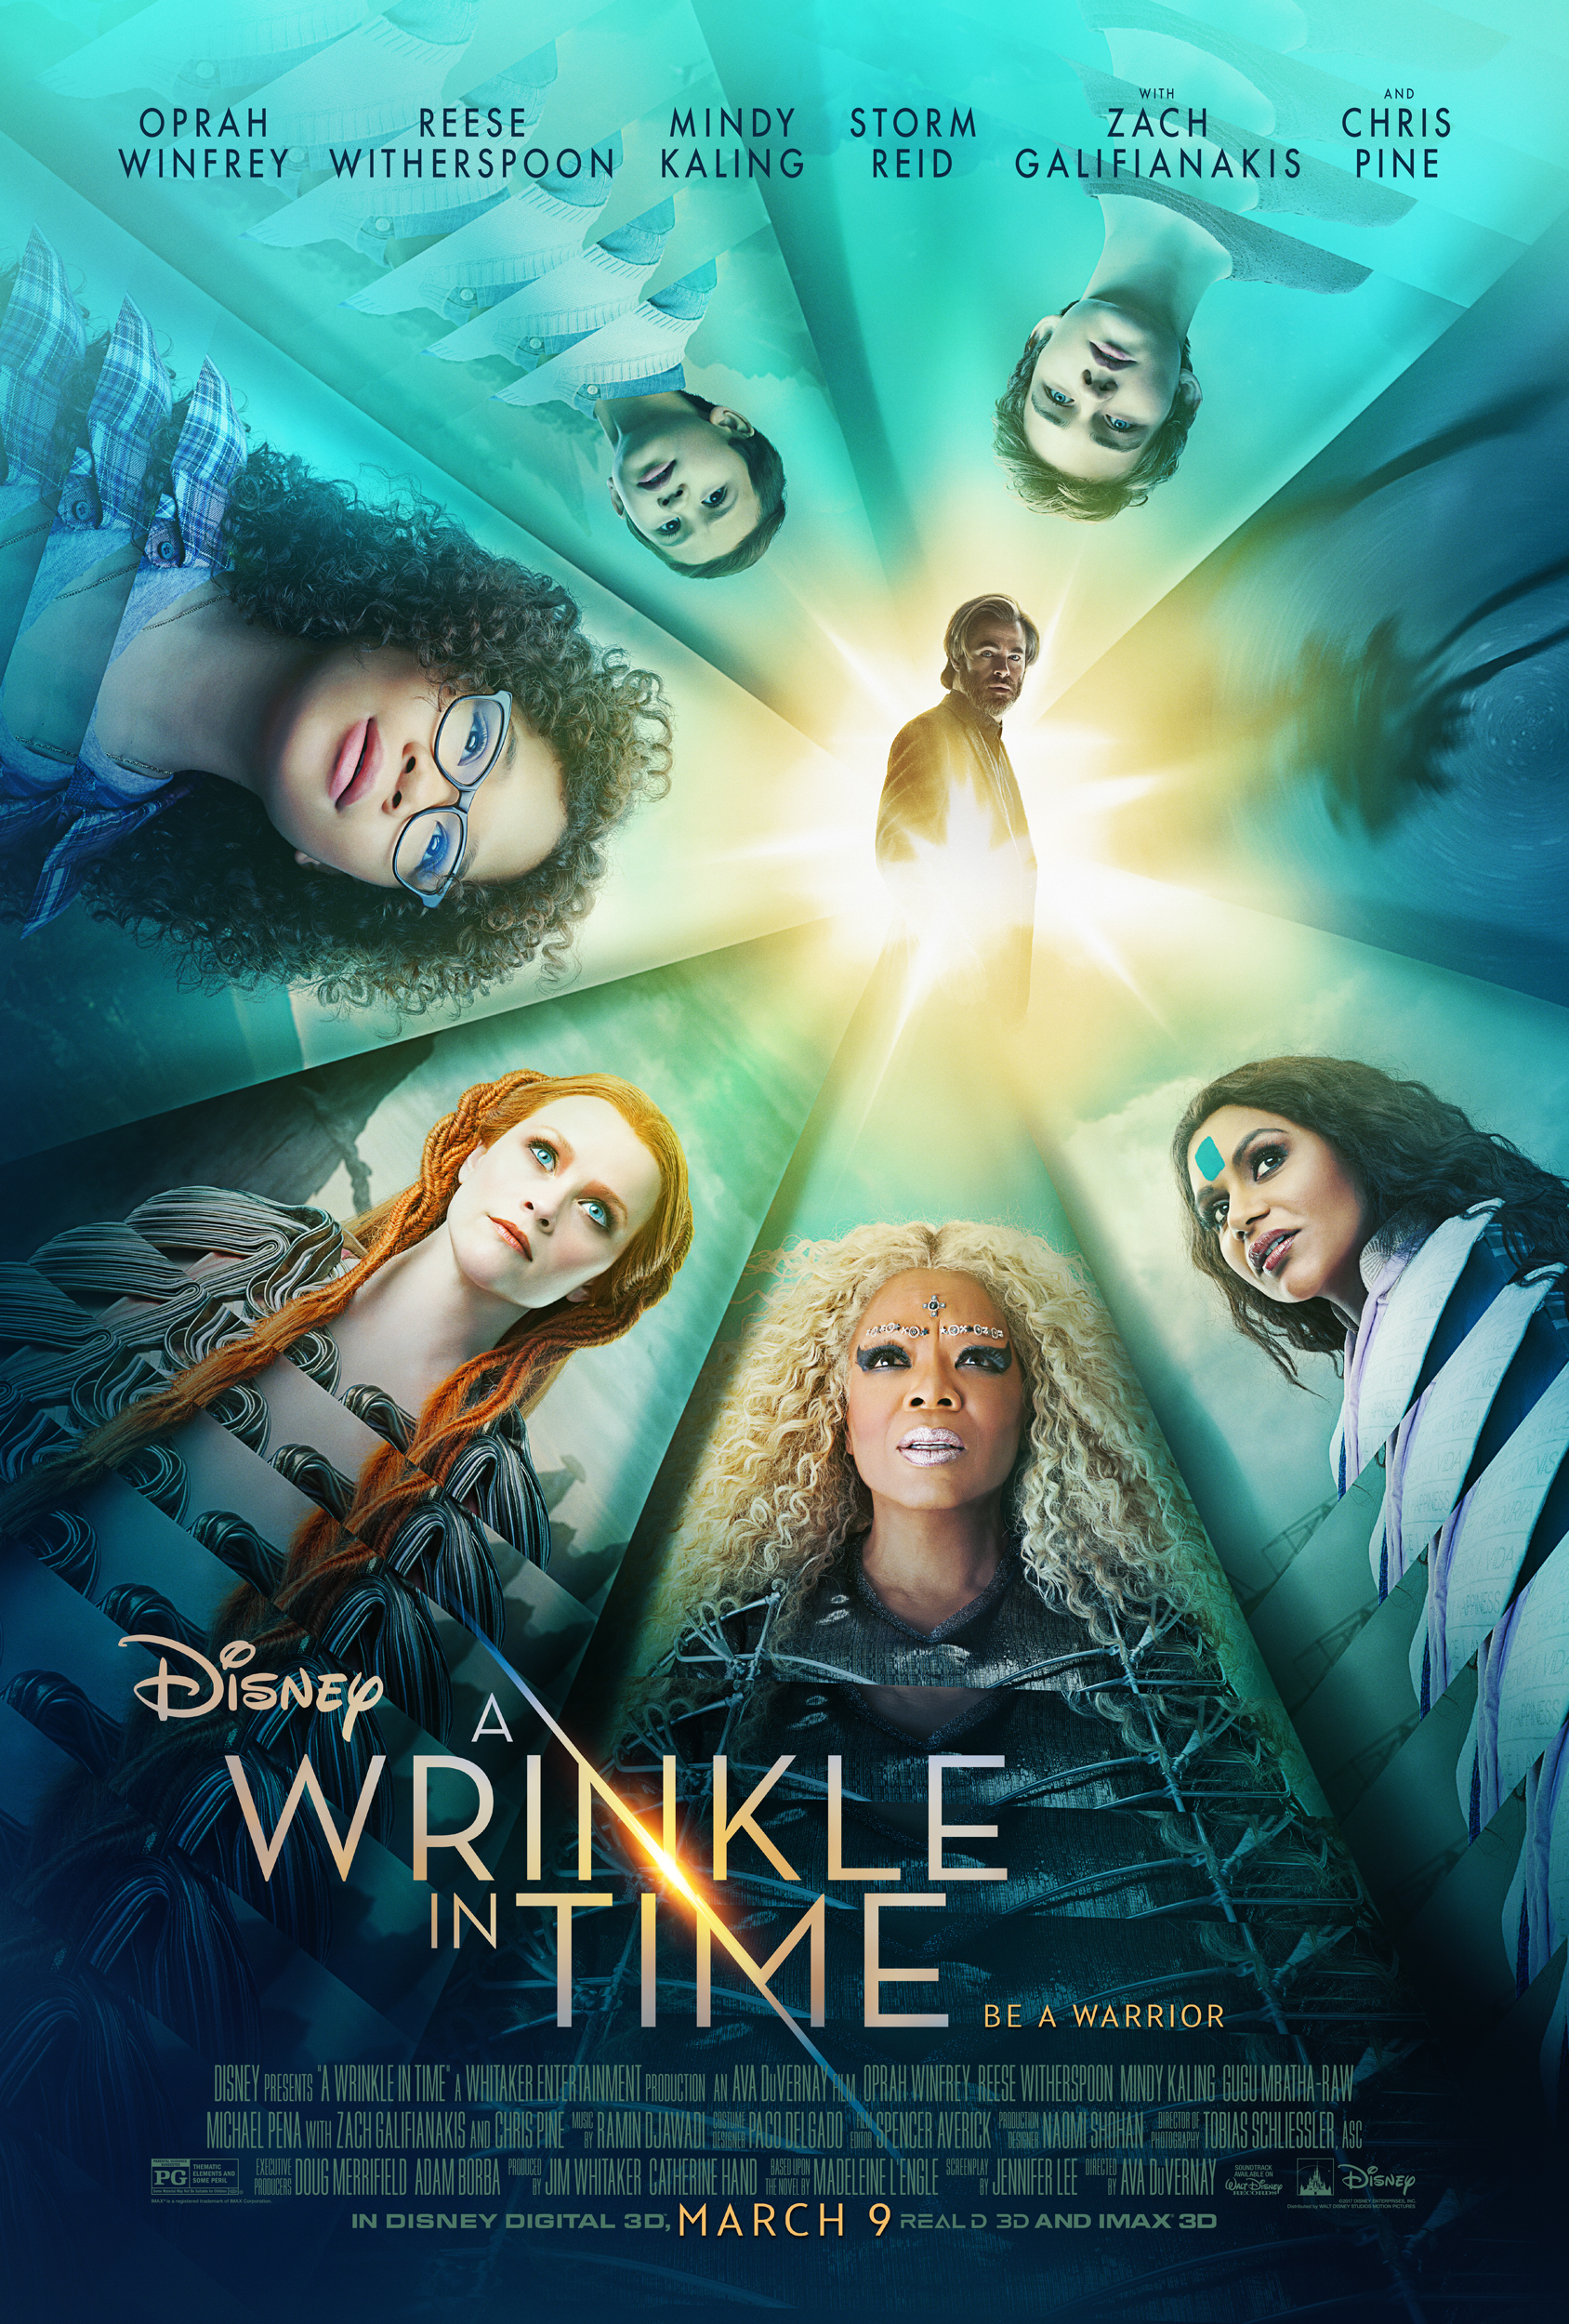 A Wrinkle in Time-2018 Disney Movies